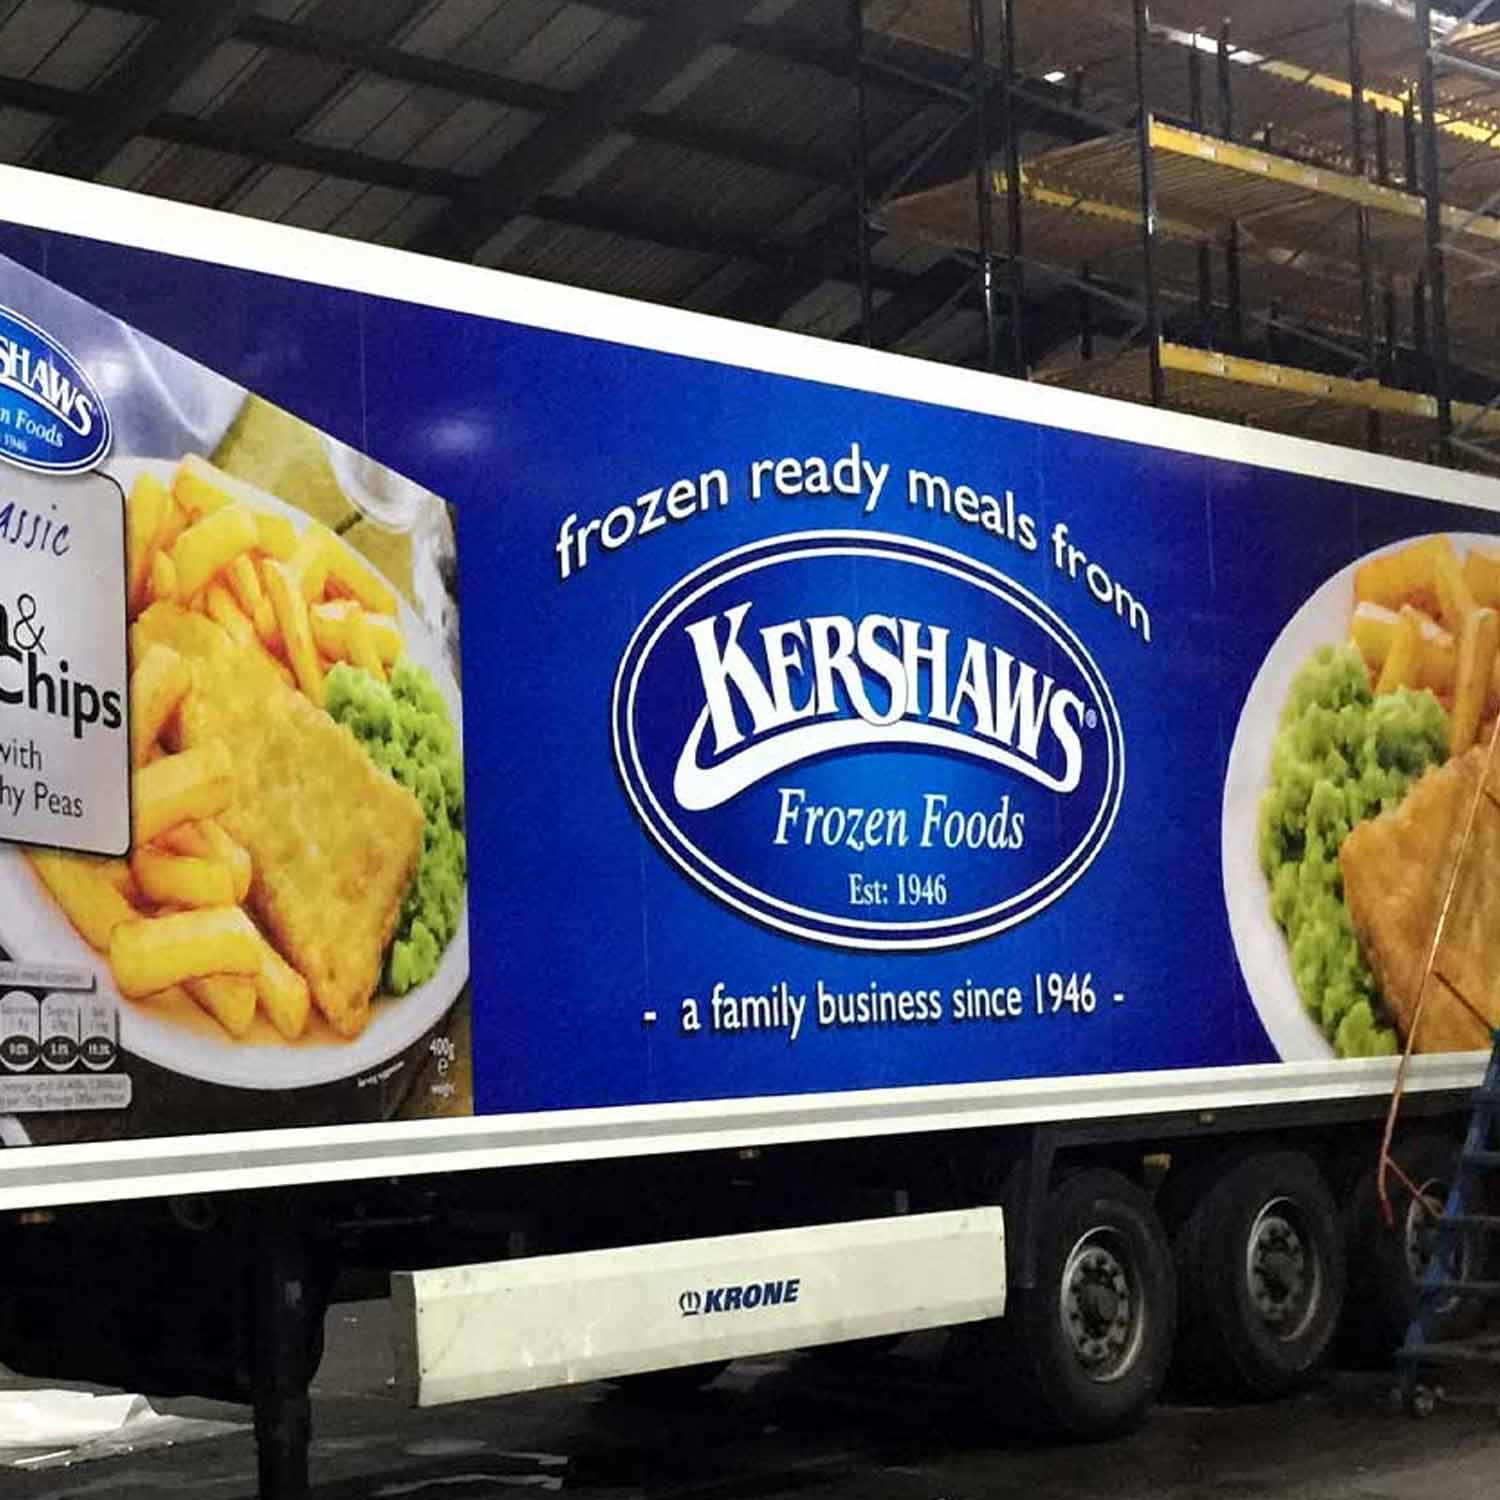 kershaws Frozen Foods HGV Advertising printed wrap